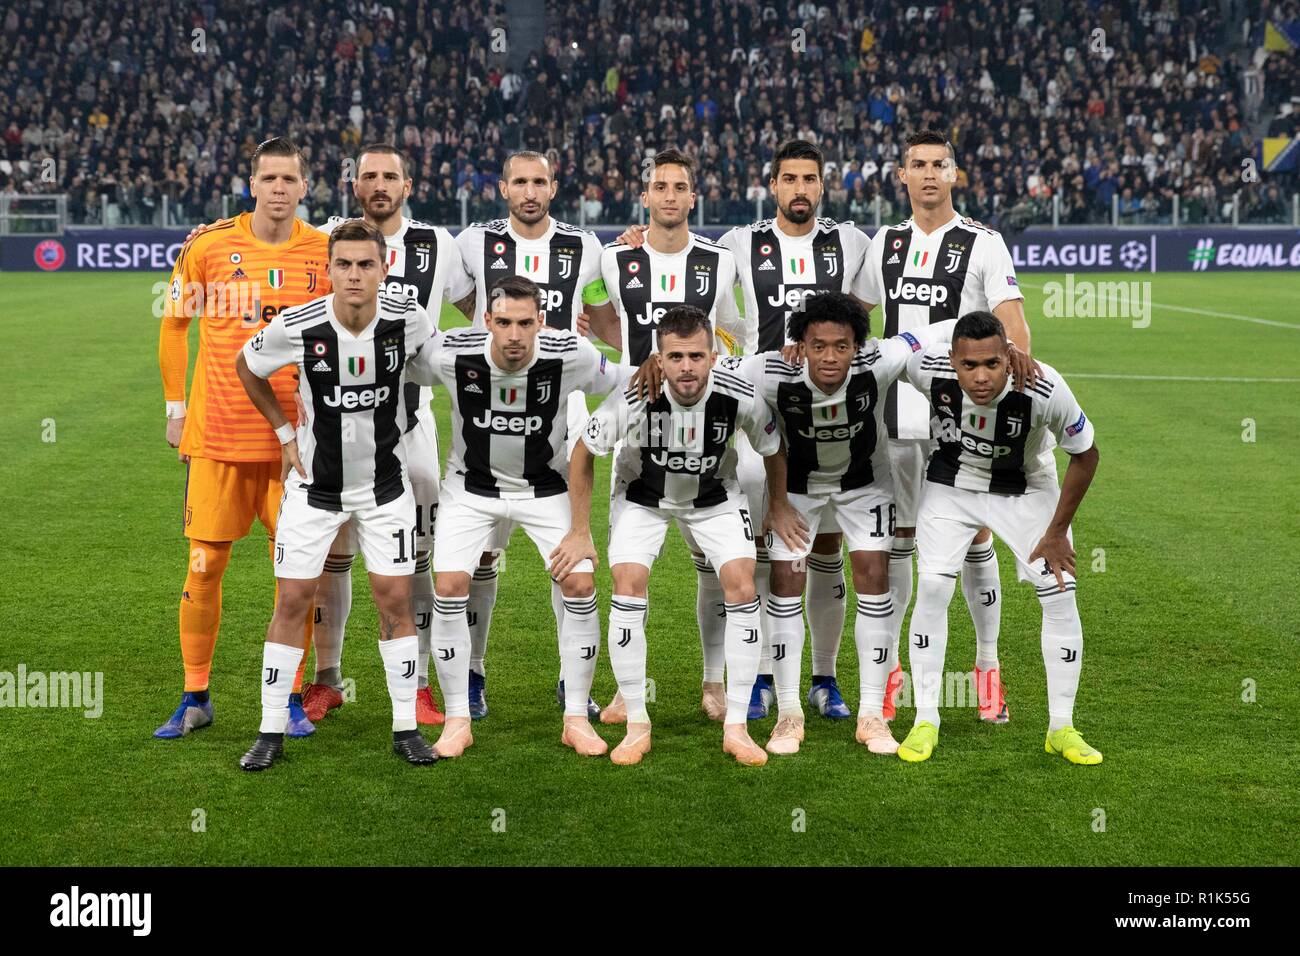 Juventus Team High Resolution Stock Photography And Images Alamy